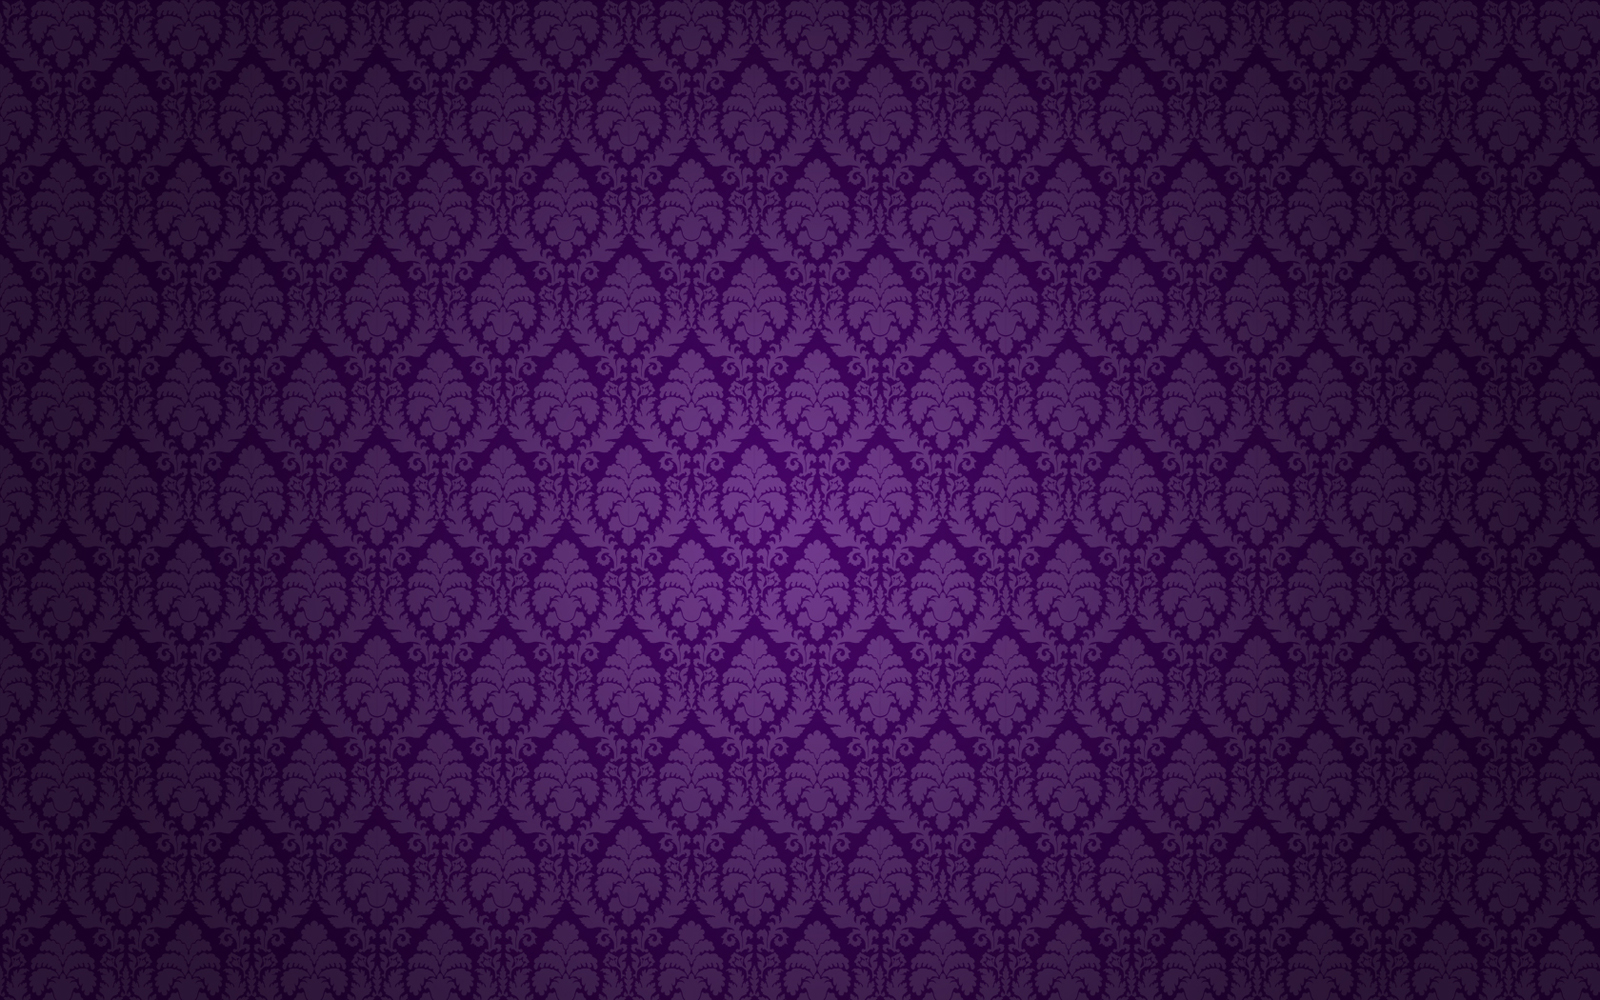 lavender vintage background - photo #11